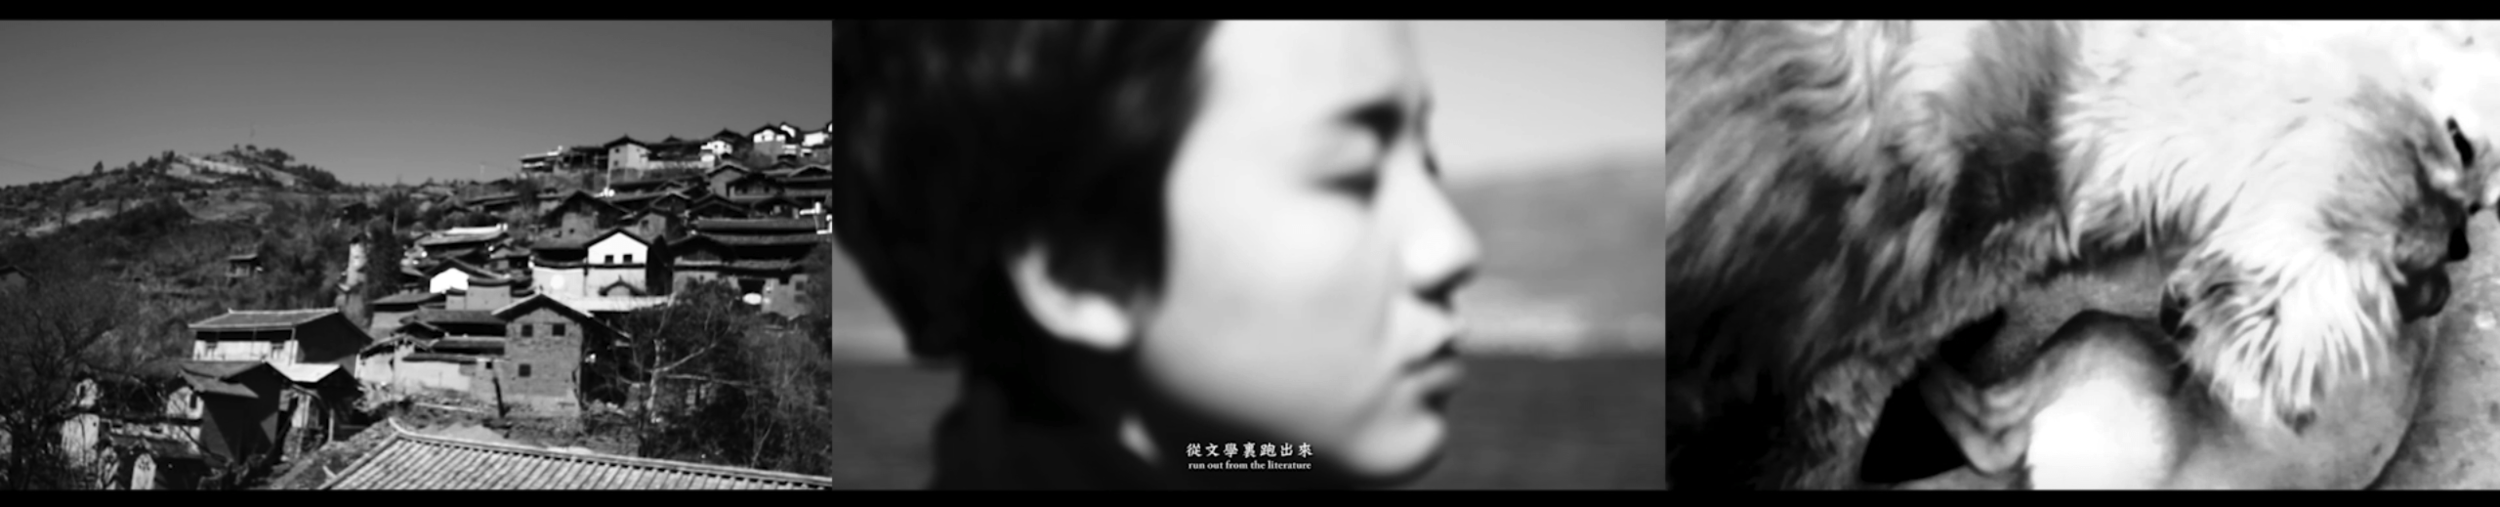 袁可如 Yuan Keru | 云龙绮梦 A Salted Entounter 三屏幕影像装置Three-screen video installation |时长 Duration 15m14s | 5+2AP | 2014-2.png